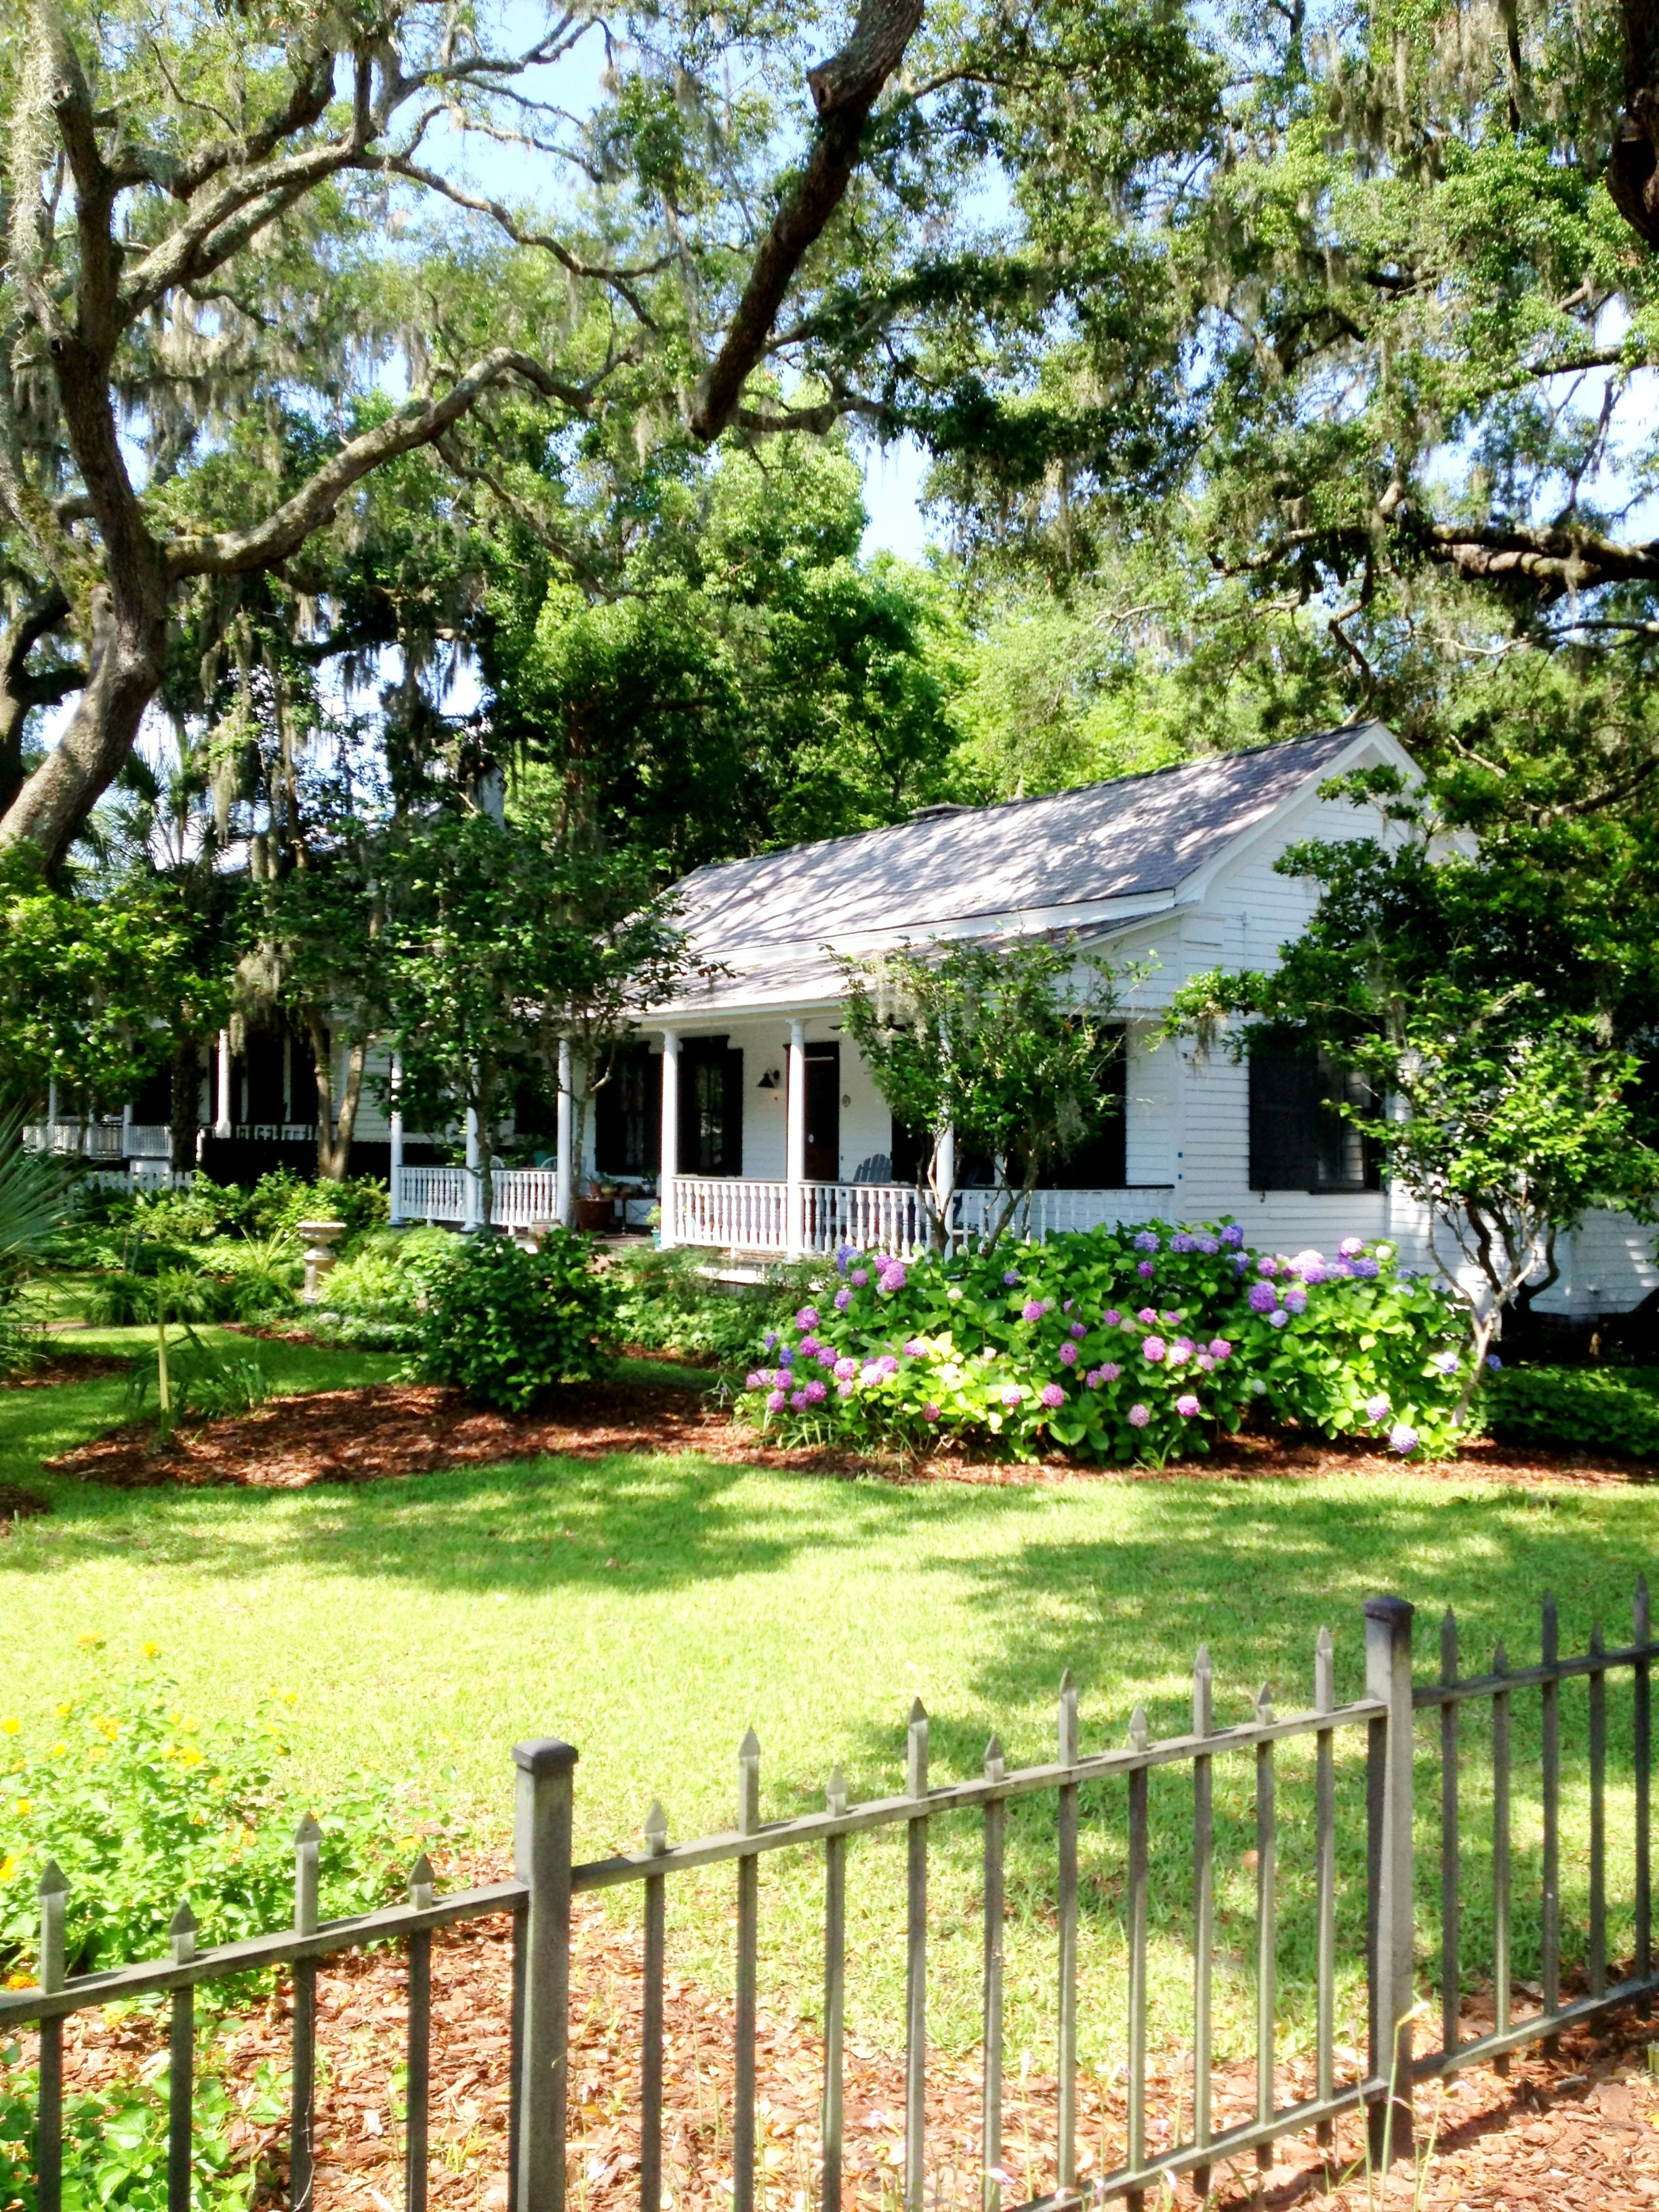 Yes please ! Old town bluffton sc cottage Hilton head